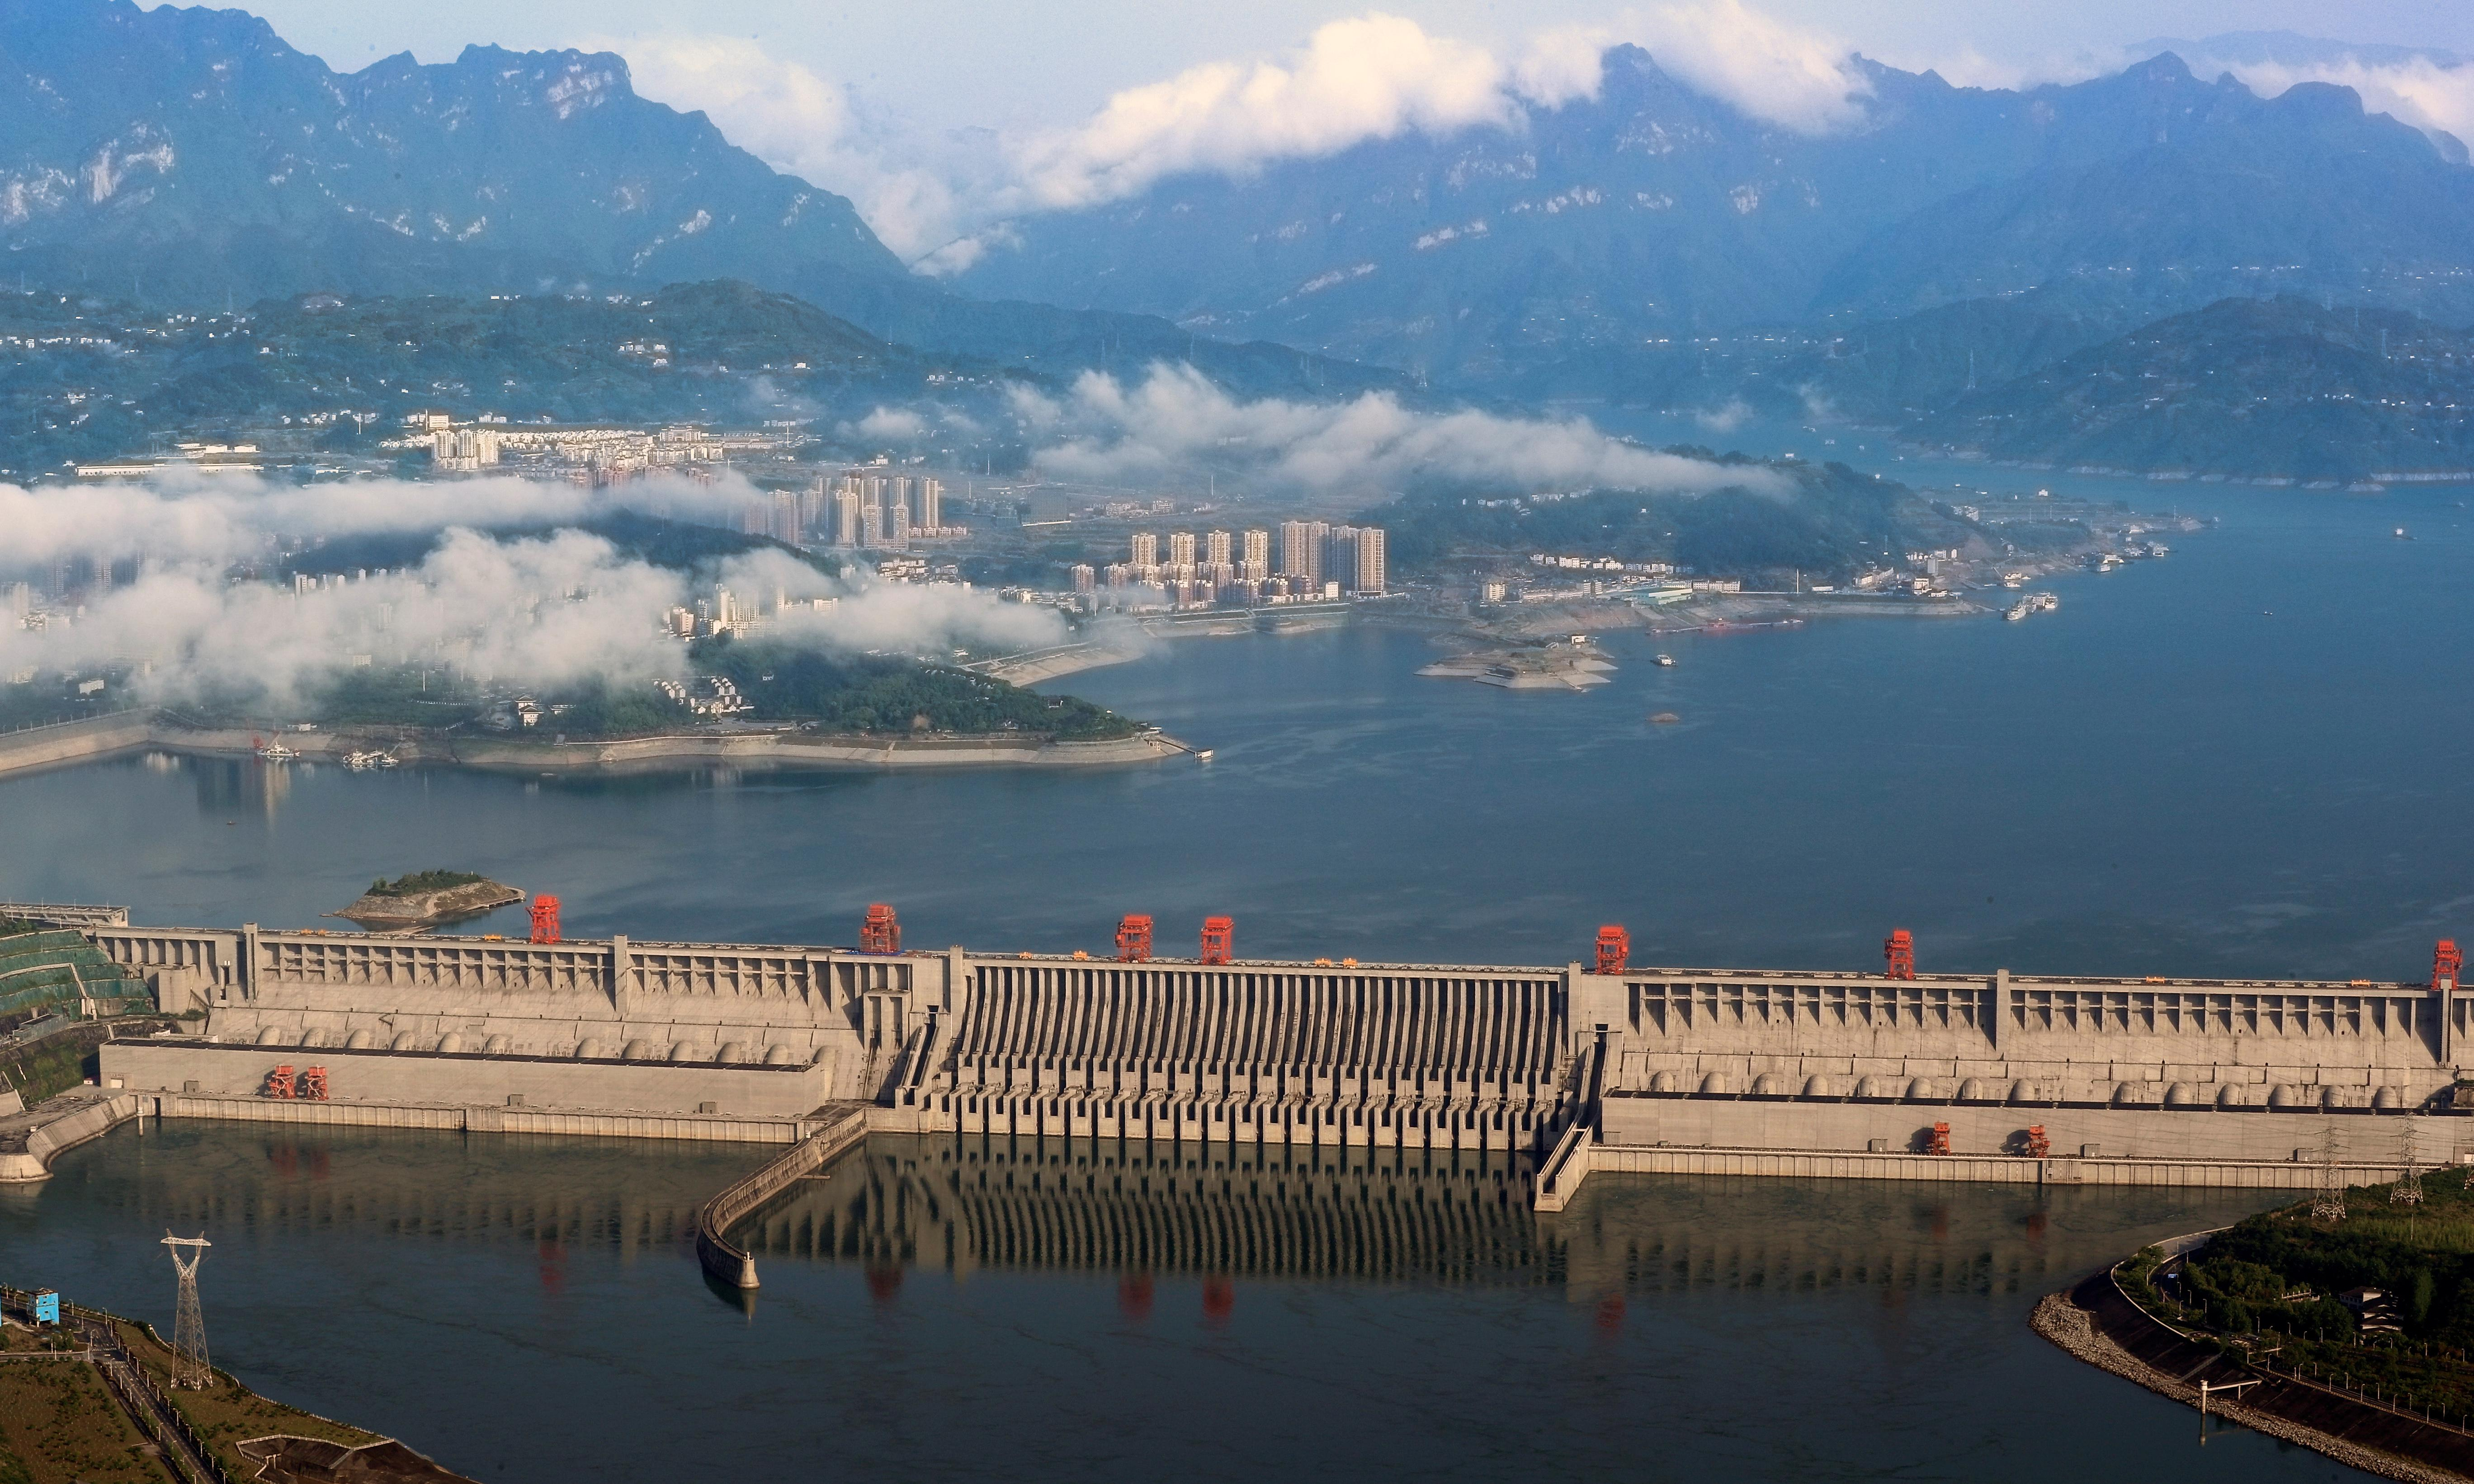 Only a third of world's great rivers remain free flowing, analysis finds